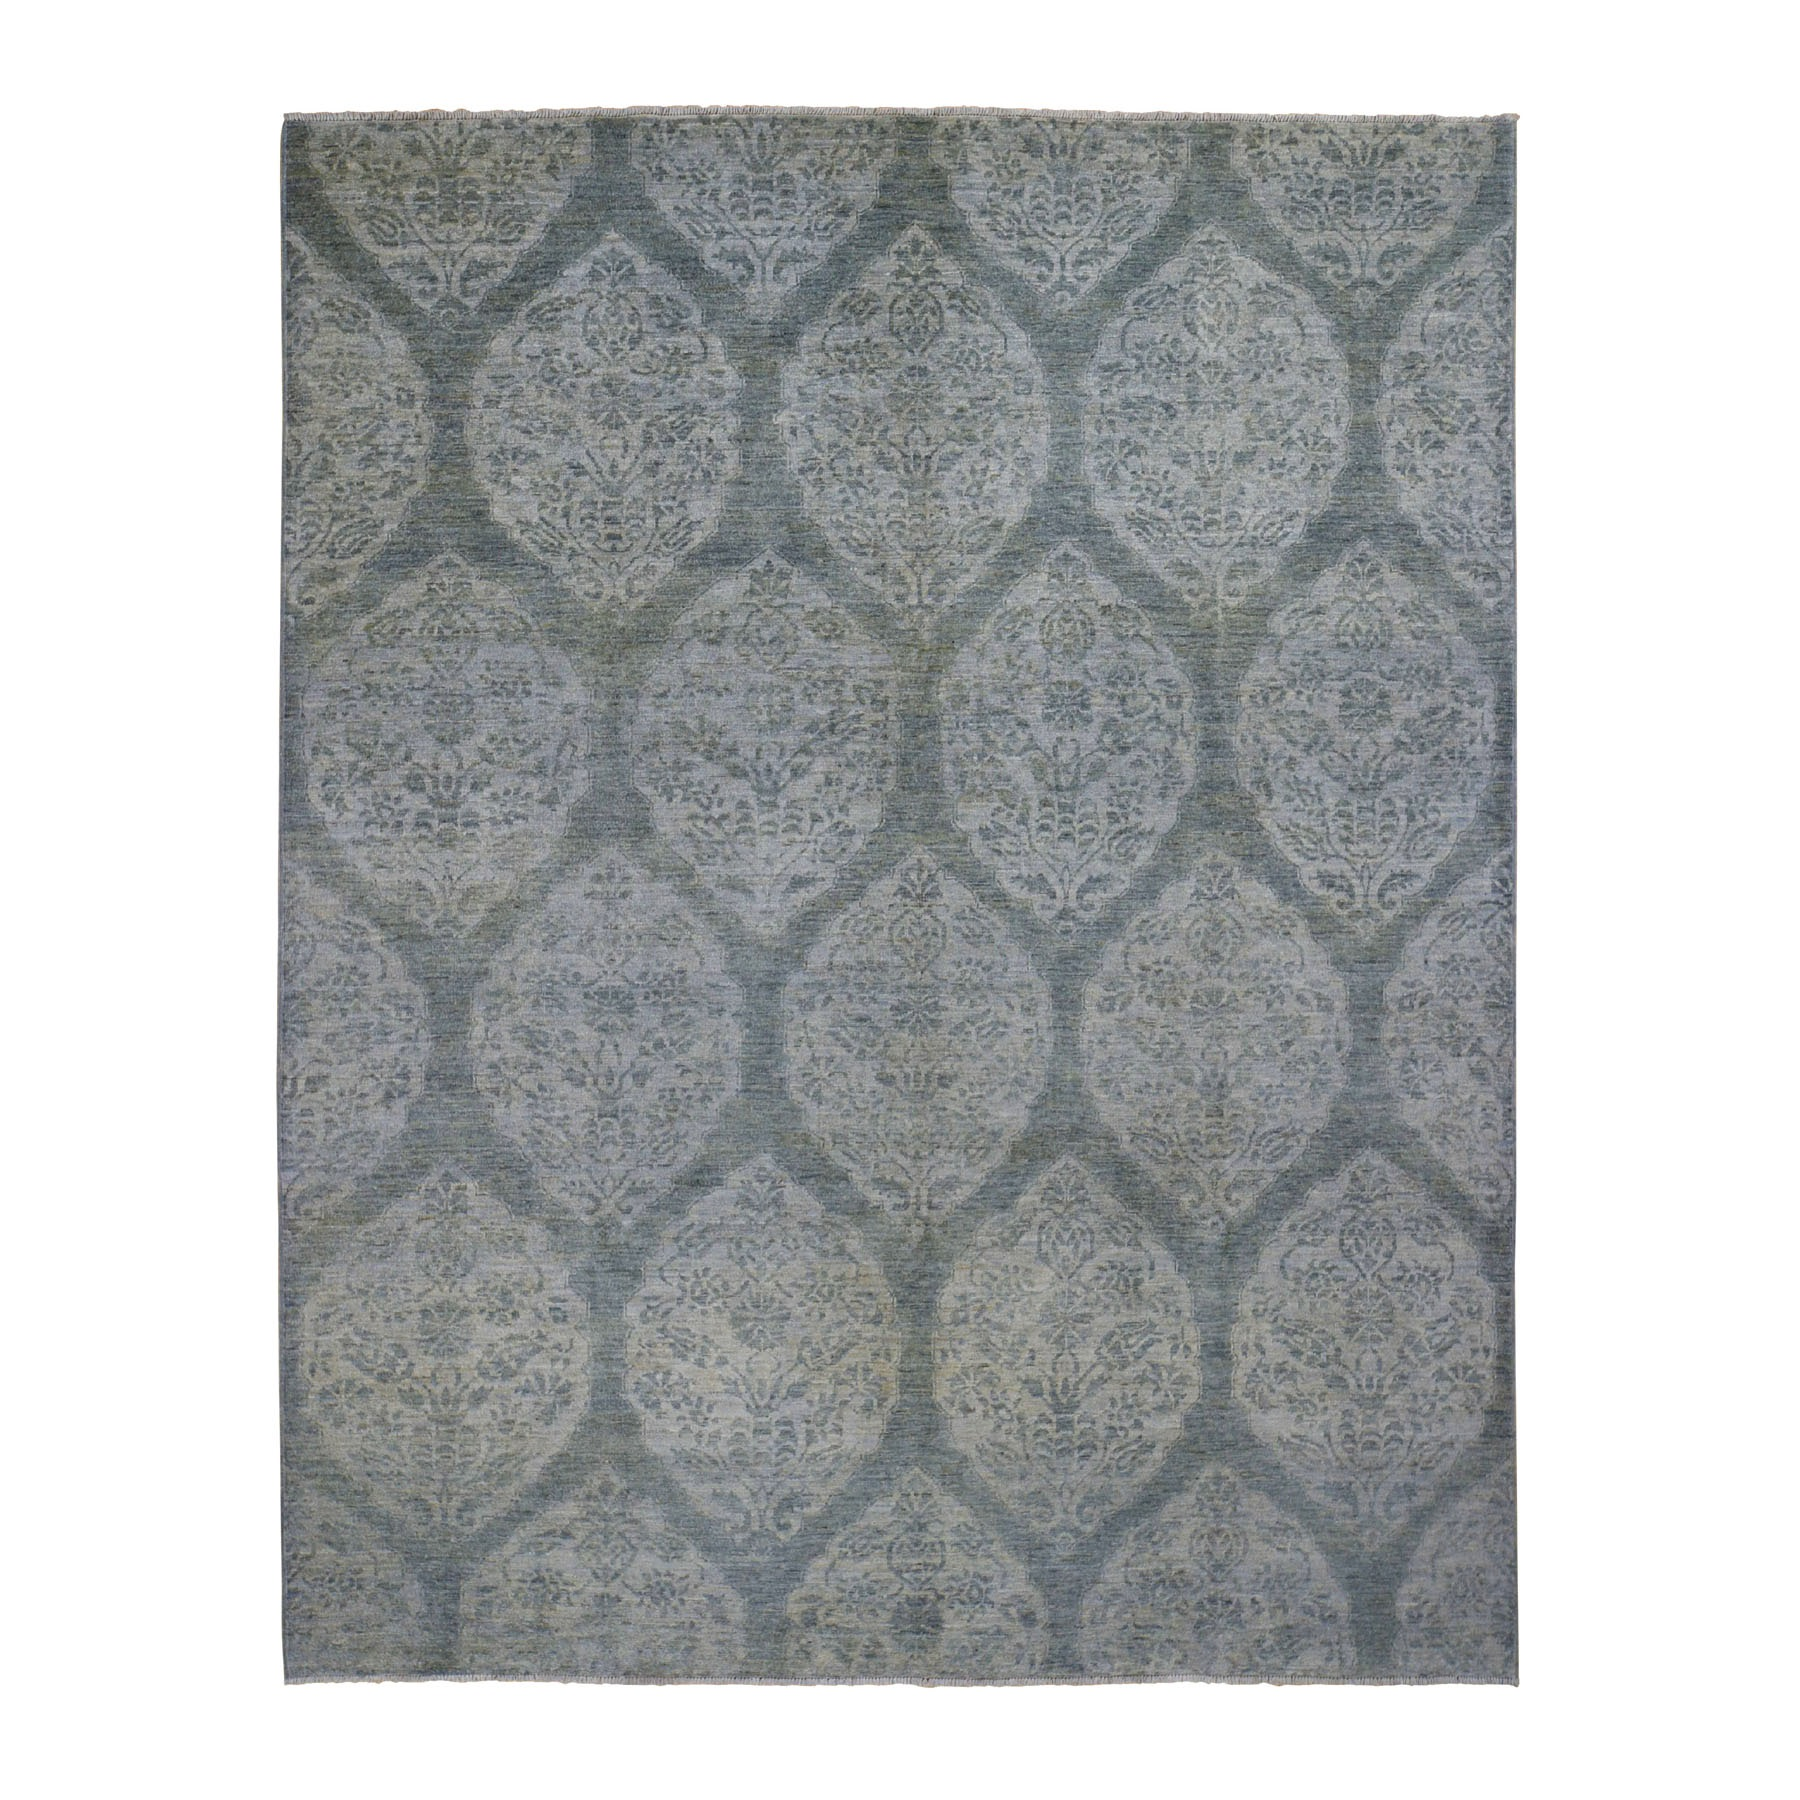 Agra And Turkish Collection Hand Knotted Grey Rug No: 0198058